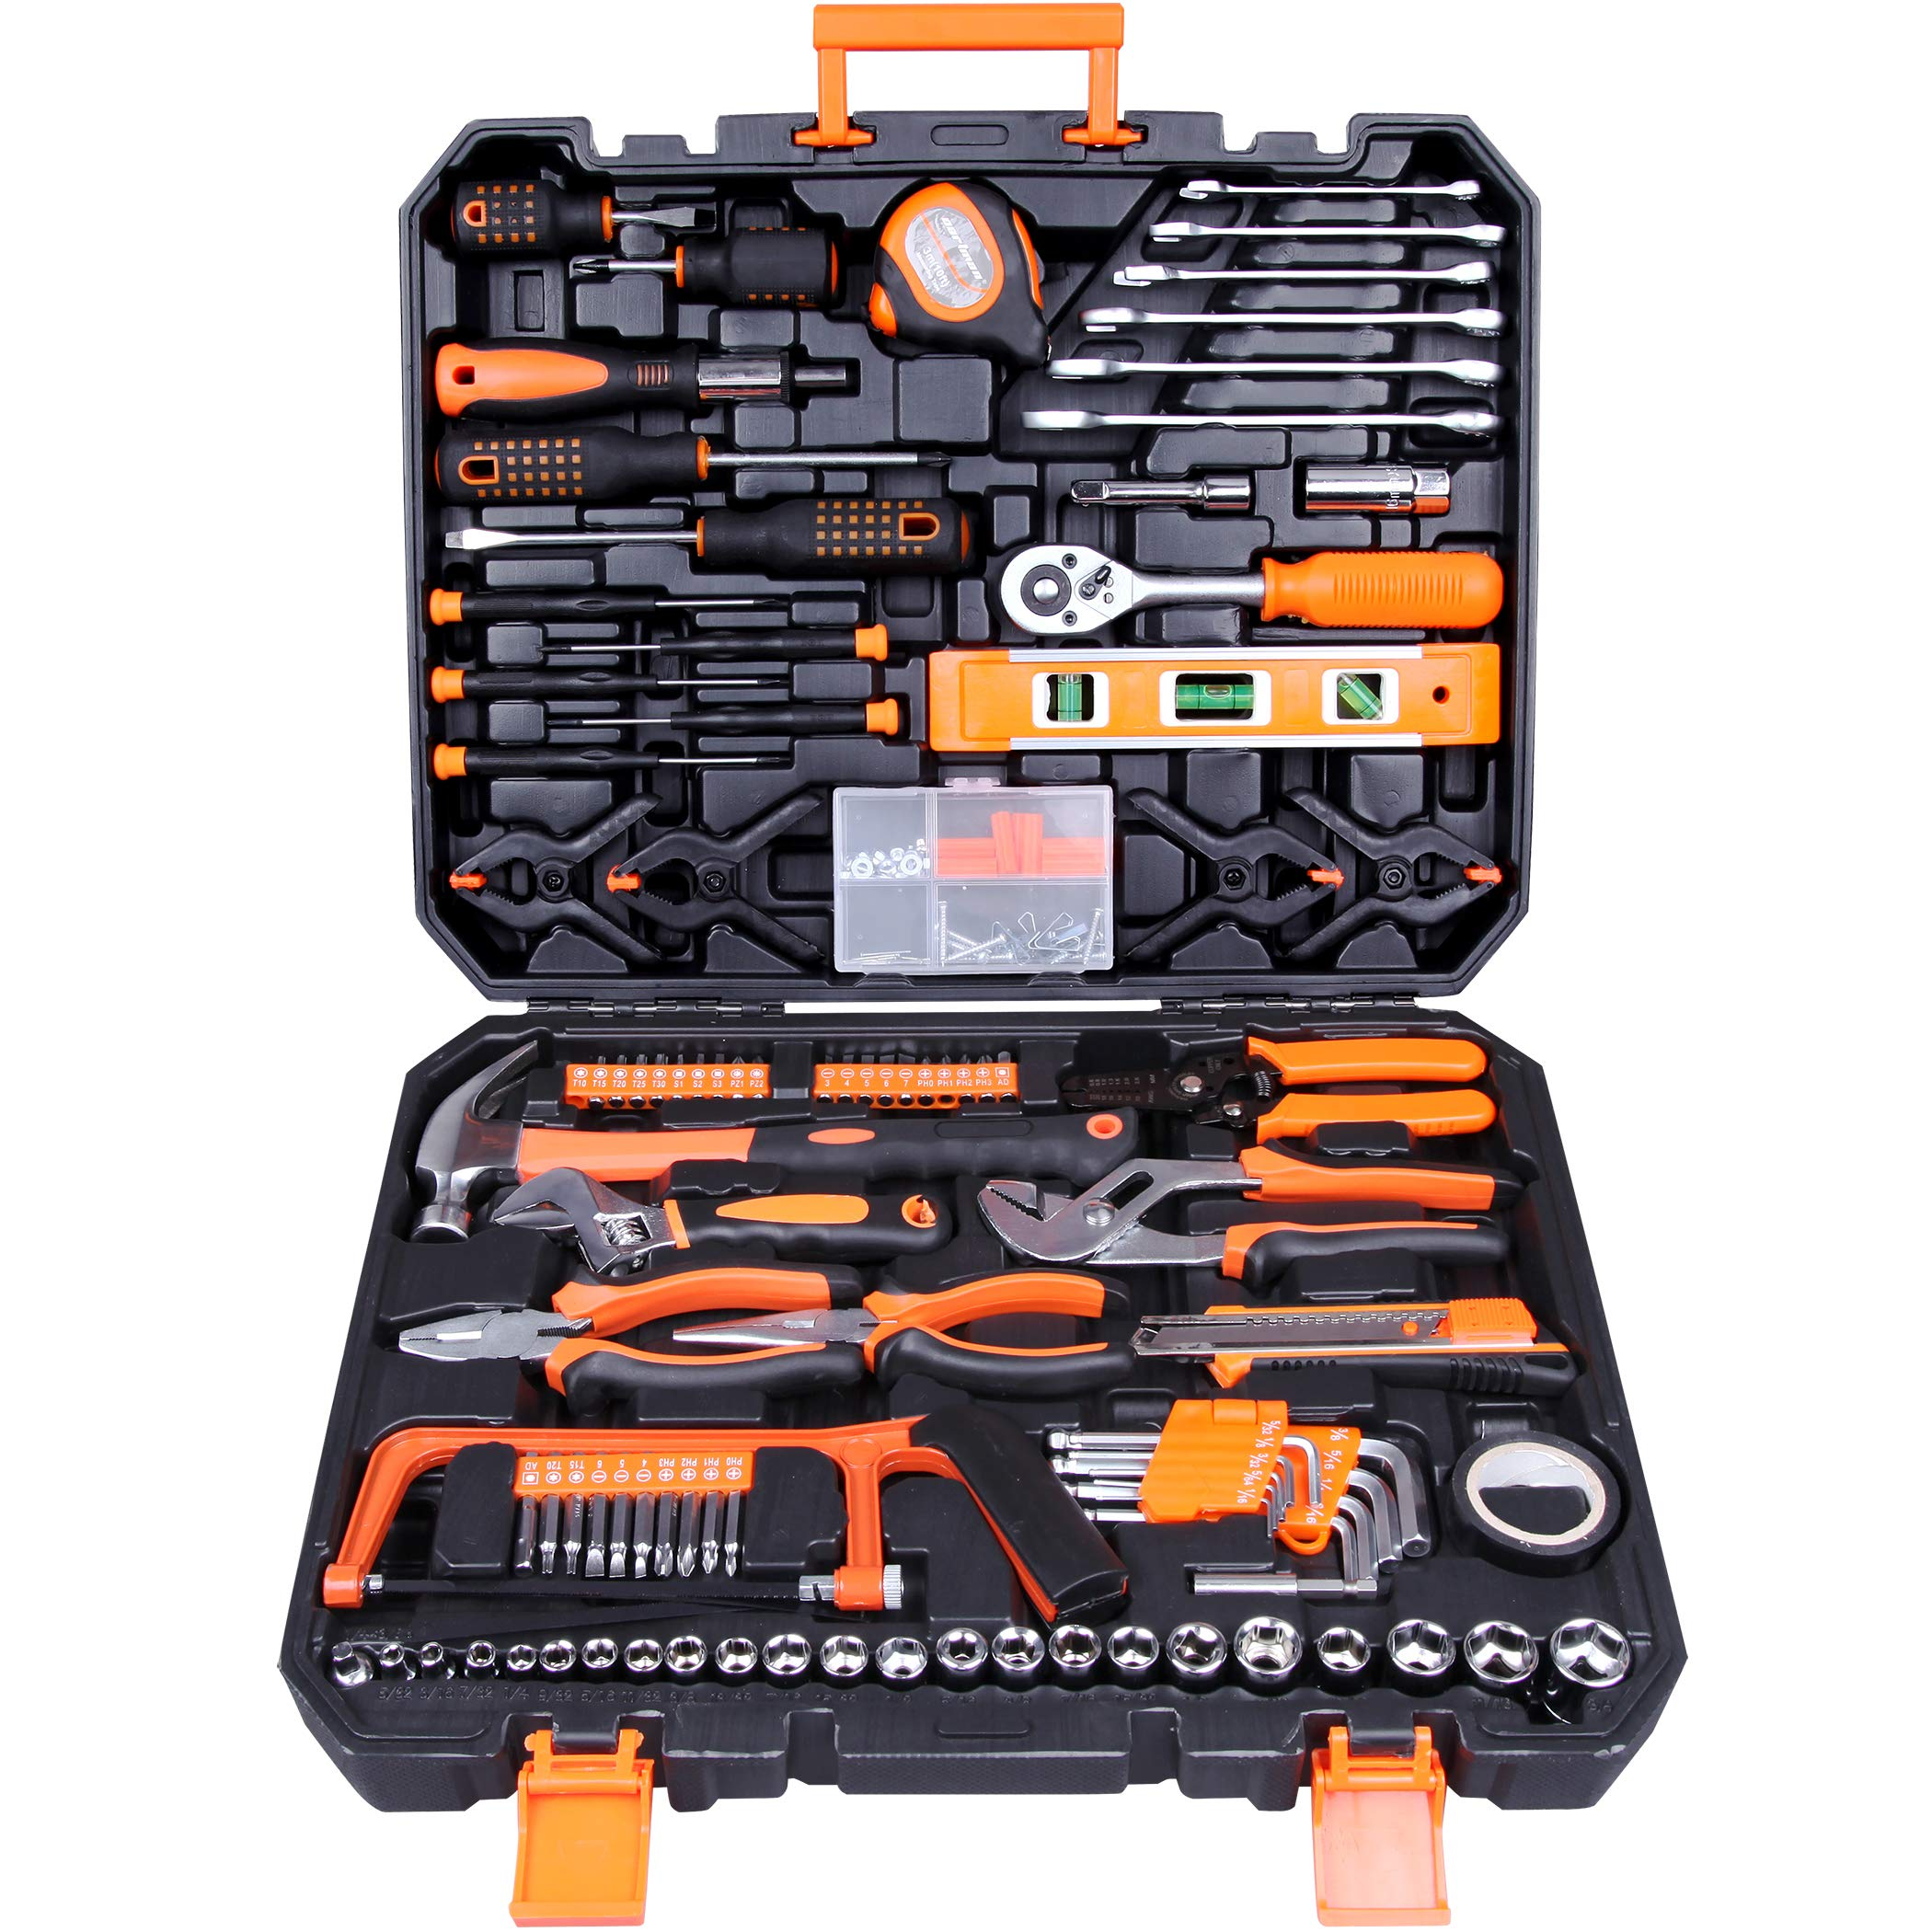 CARTMAN Tool Set 168Pcs Orange, General Household Hand Tool Kit with Plastic Toolbox, Electrician's Tools in Storage Case by CARTMAN